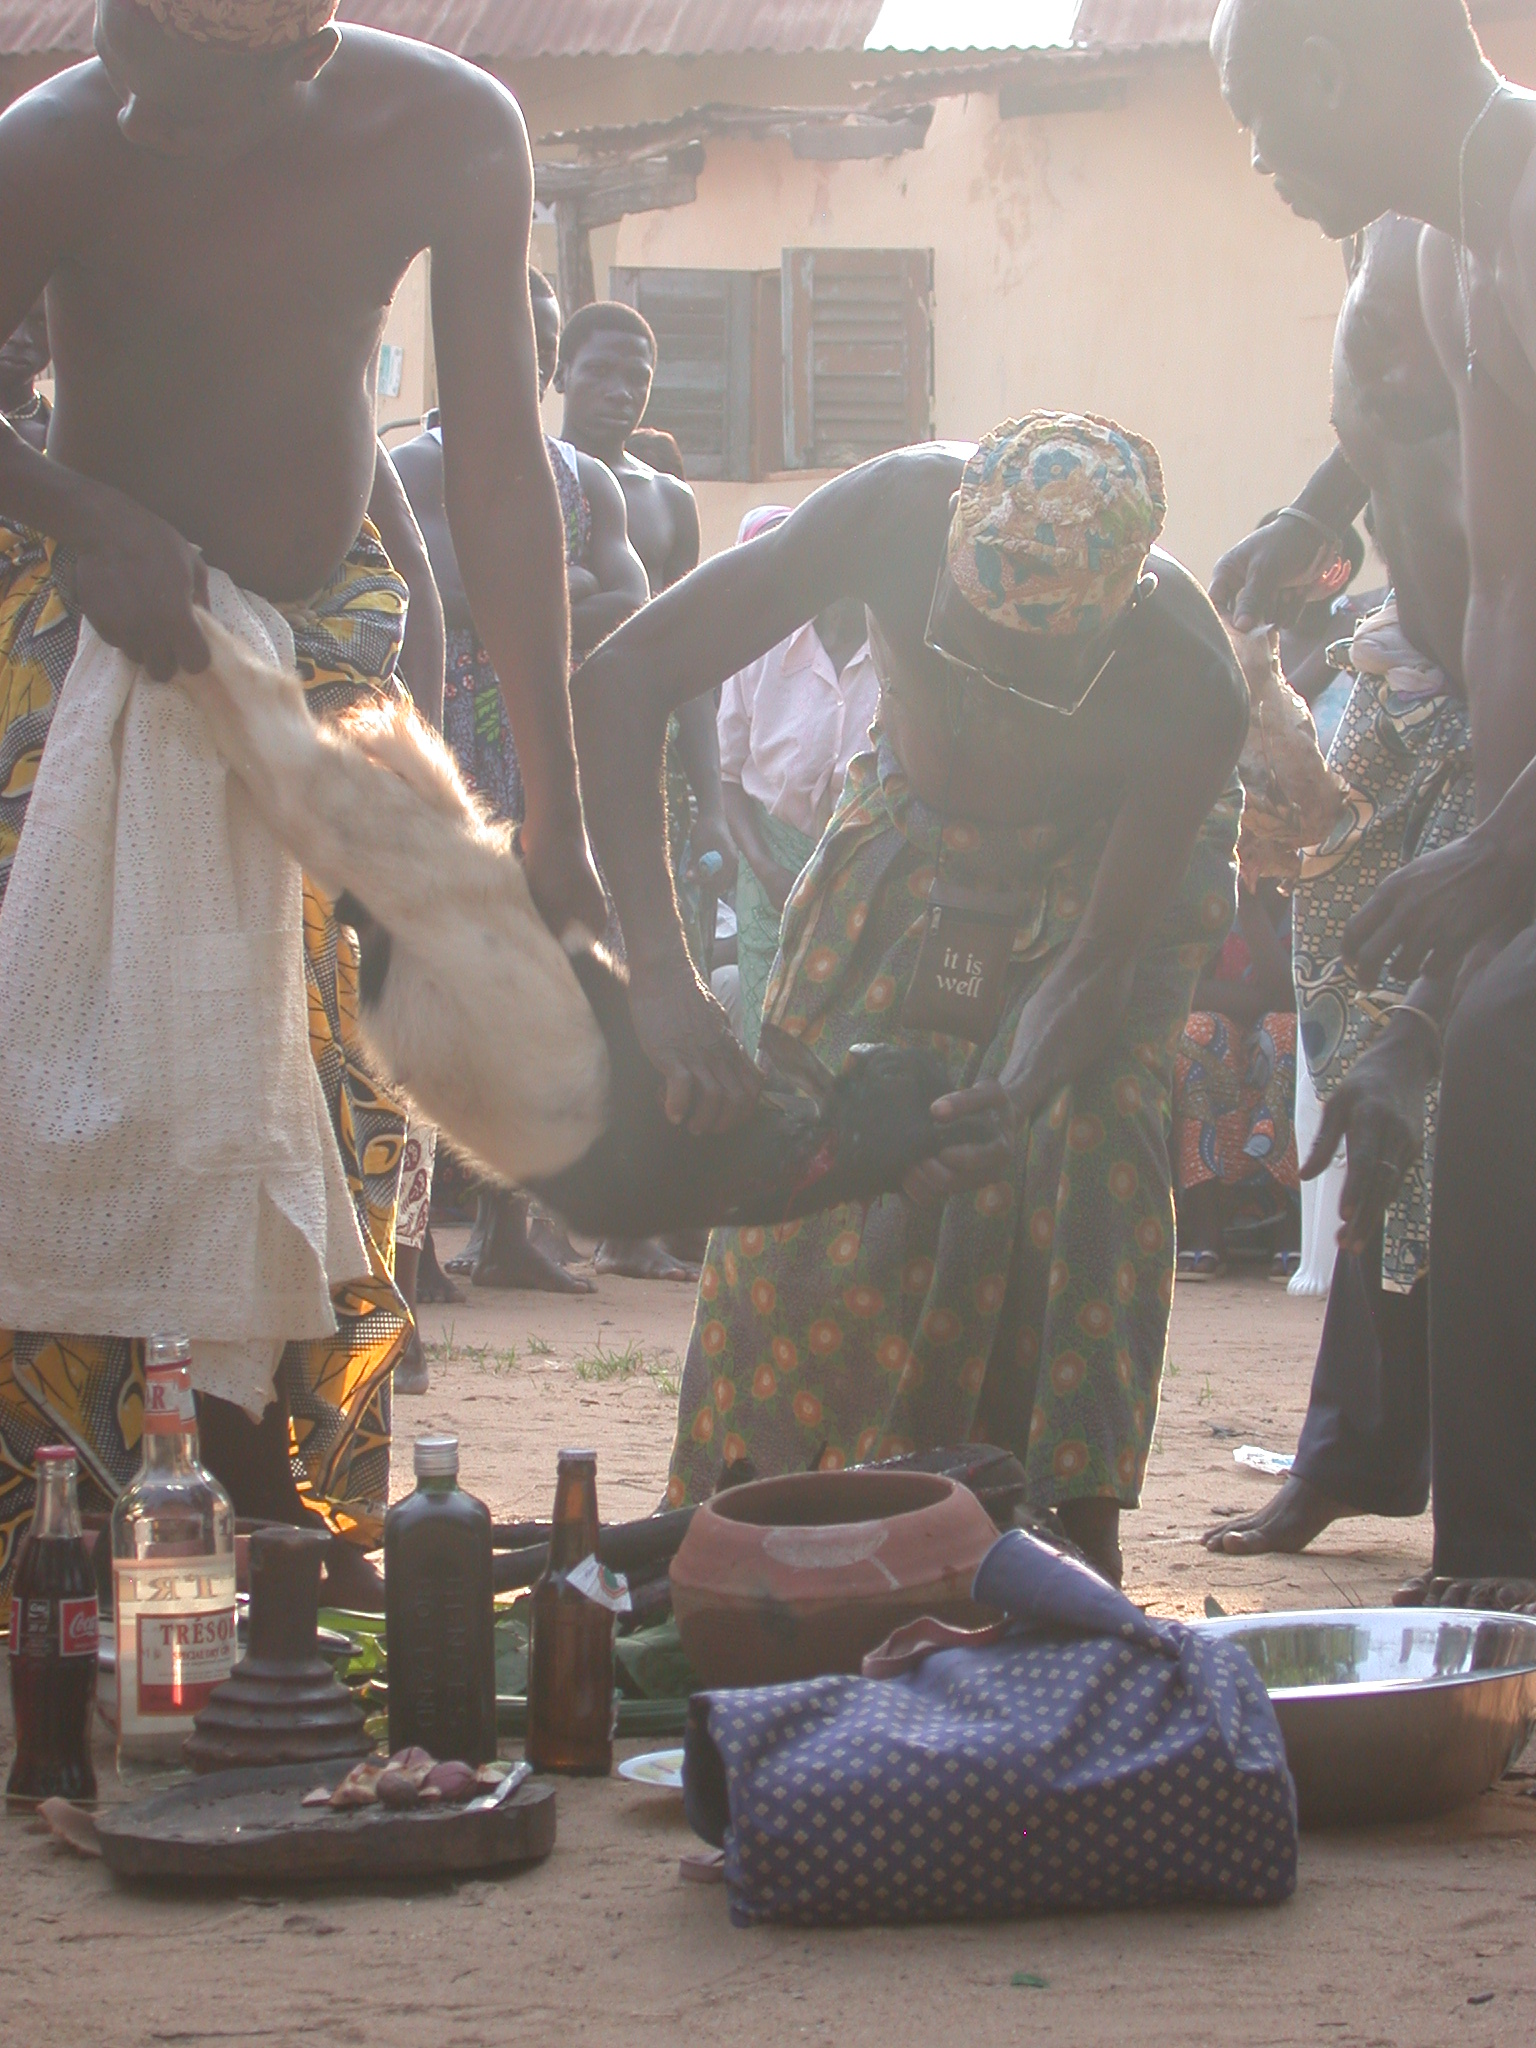 Finishing Draining of Sacrifical Goat Blood, Vodun Ritual, Ouidah, Benin